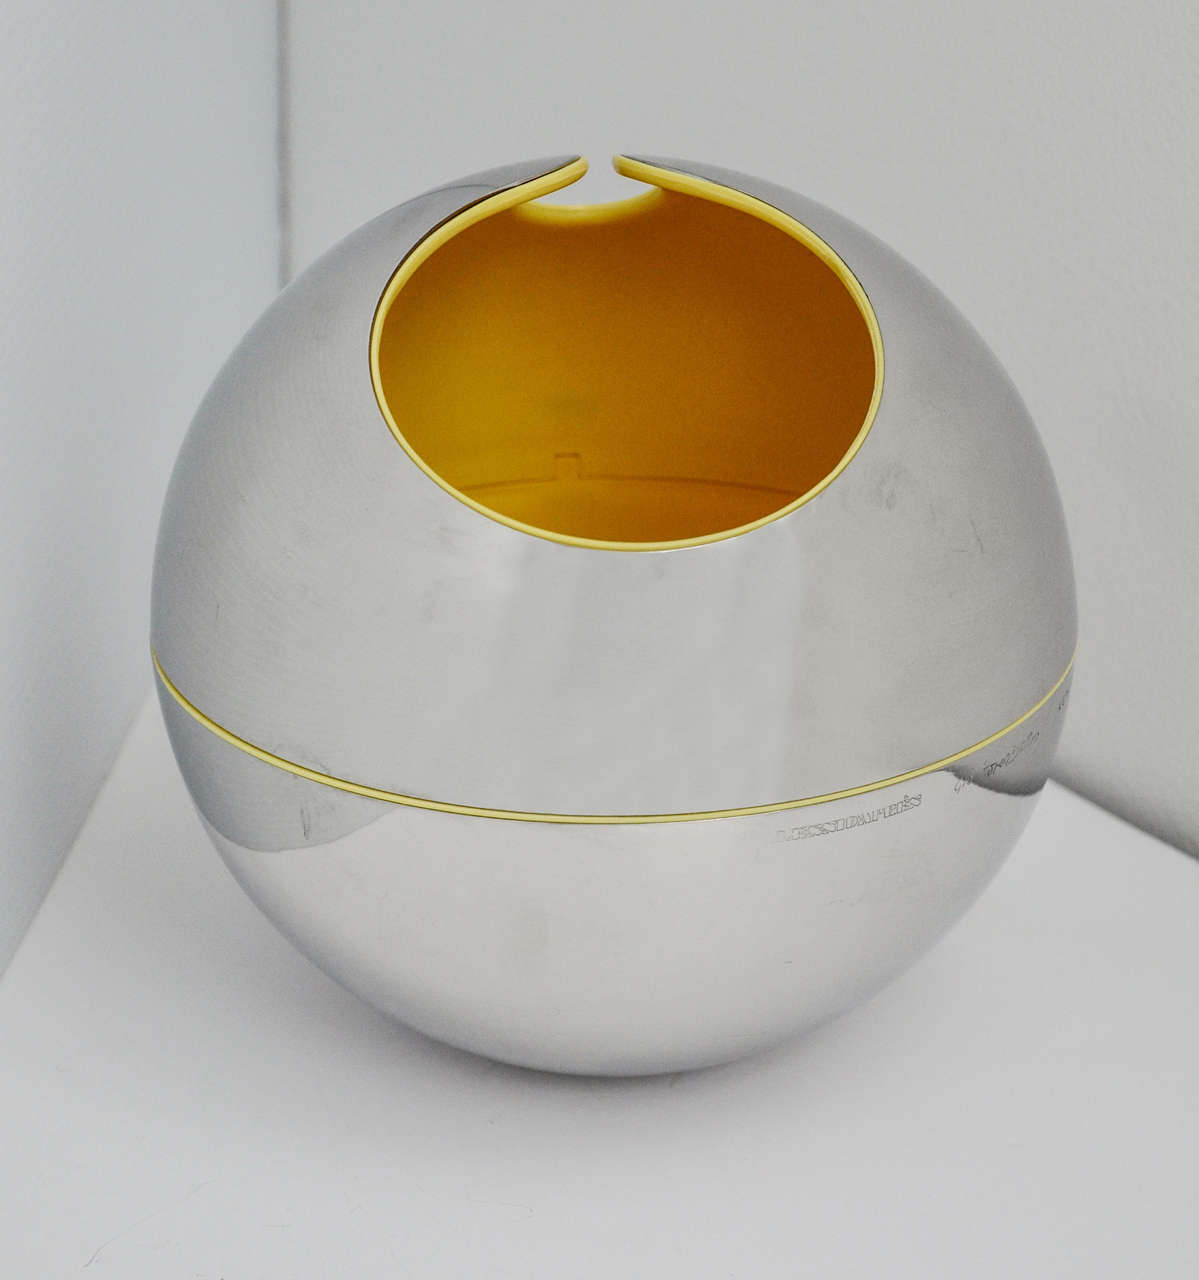 A stainless steel sphere with a yellow plastic interior designed by Gio Pomodoro for Alessi in 1972. Along with his brother Arnaldo